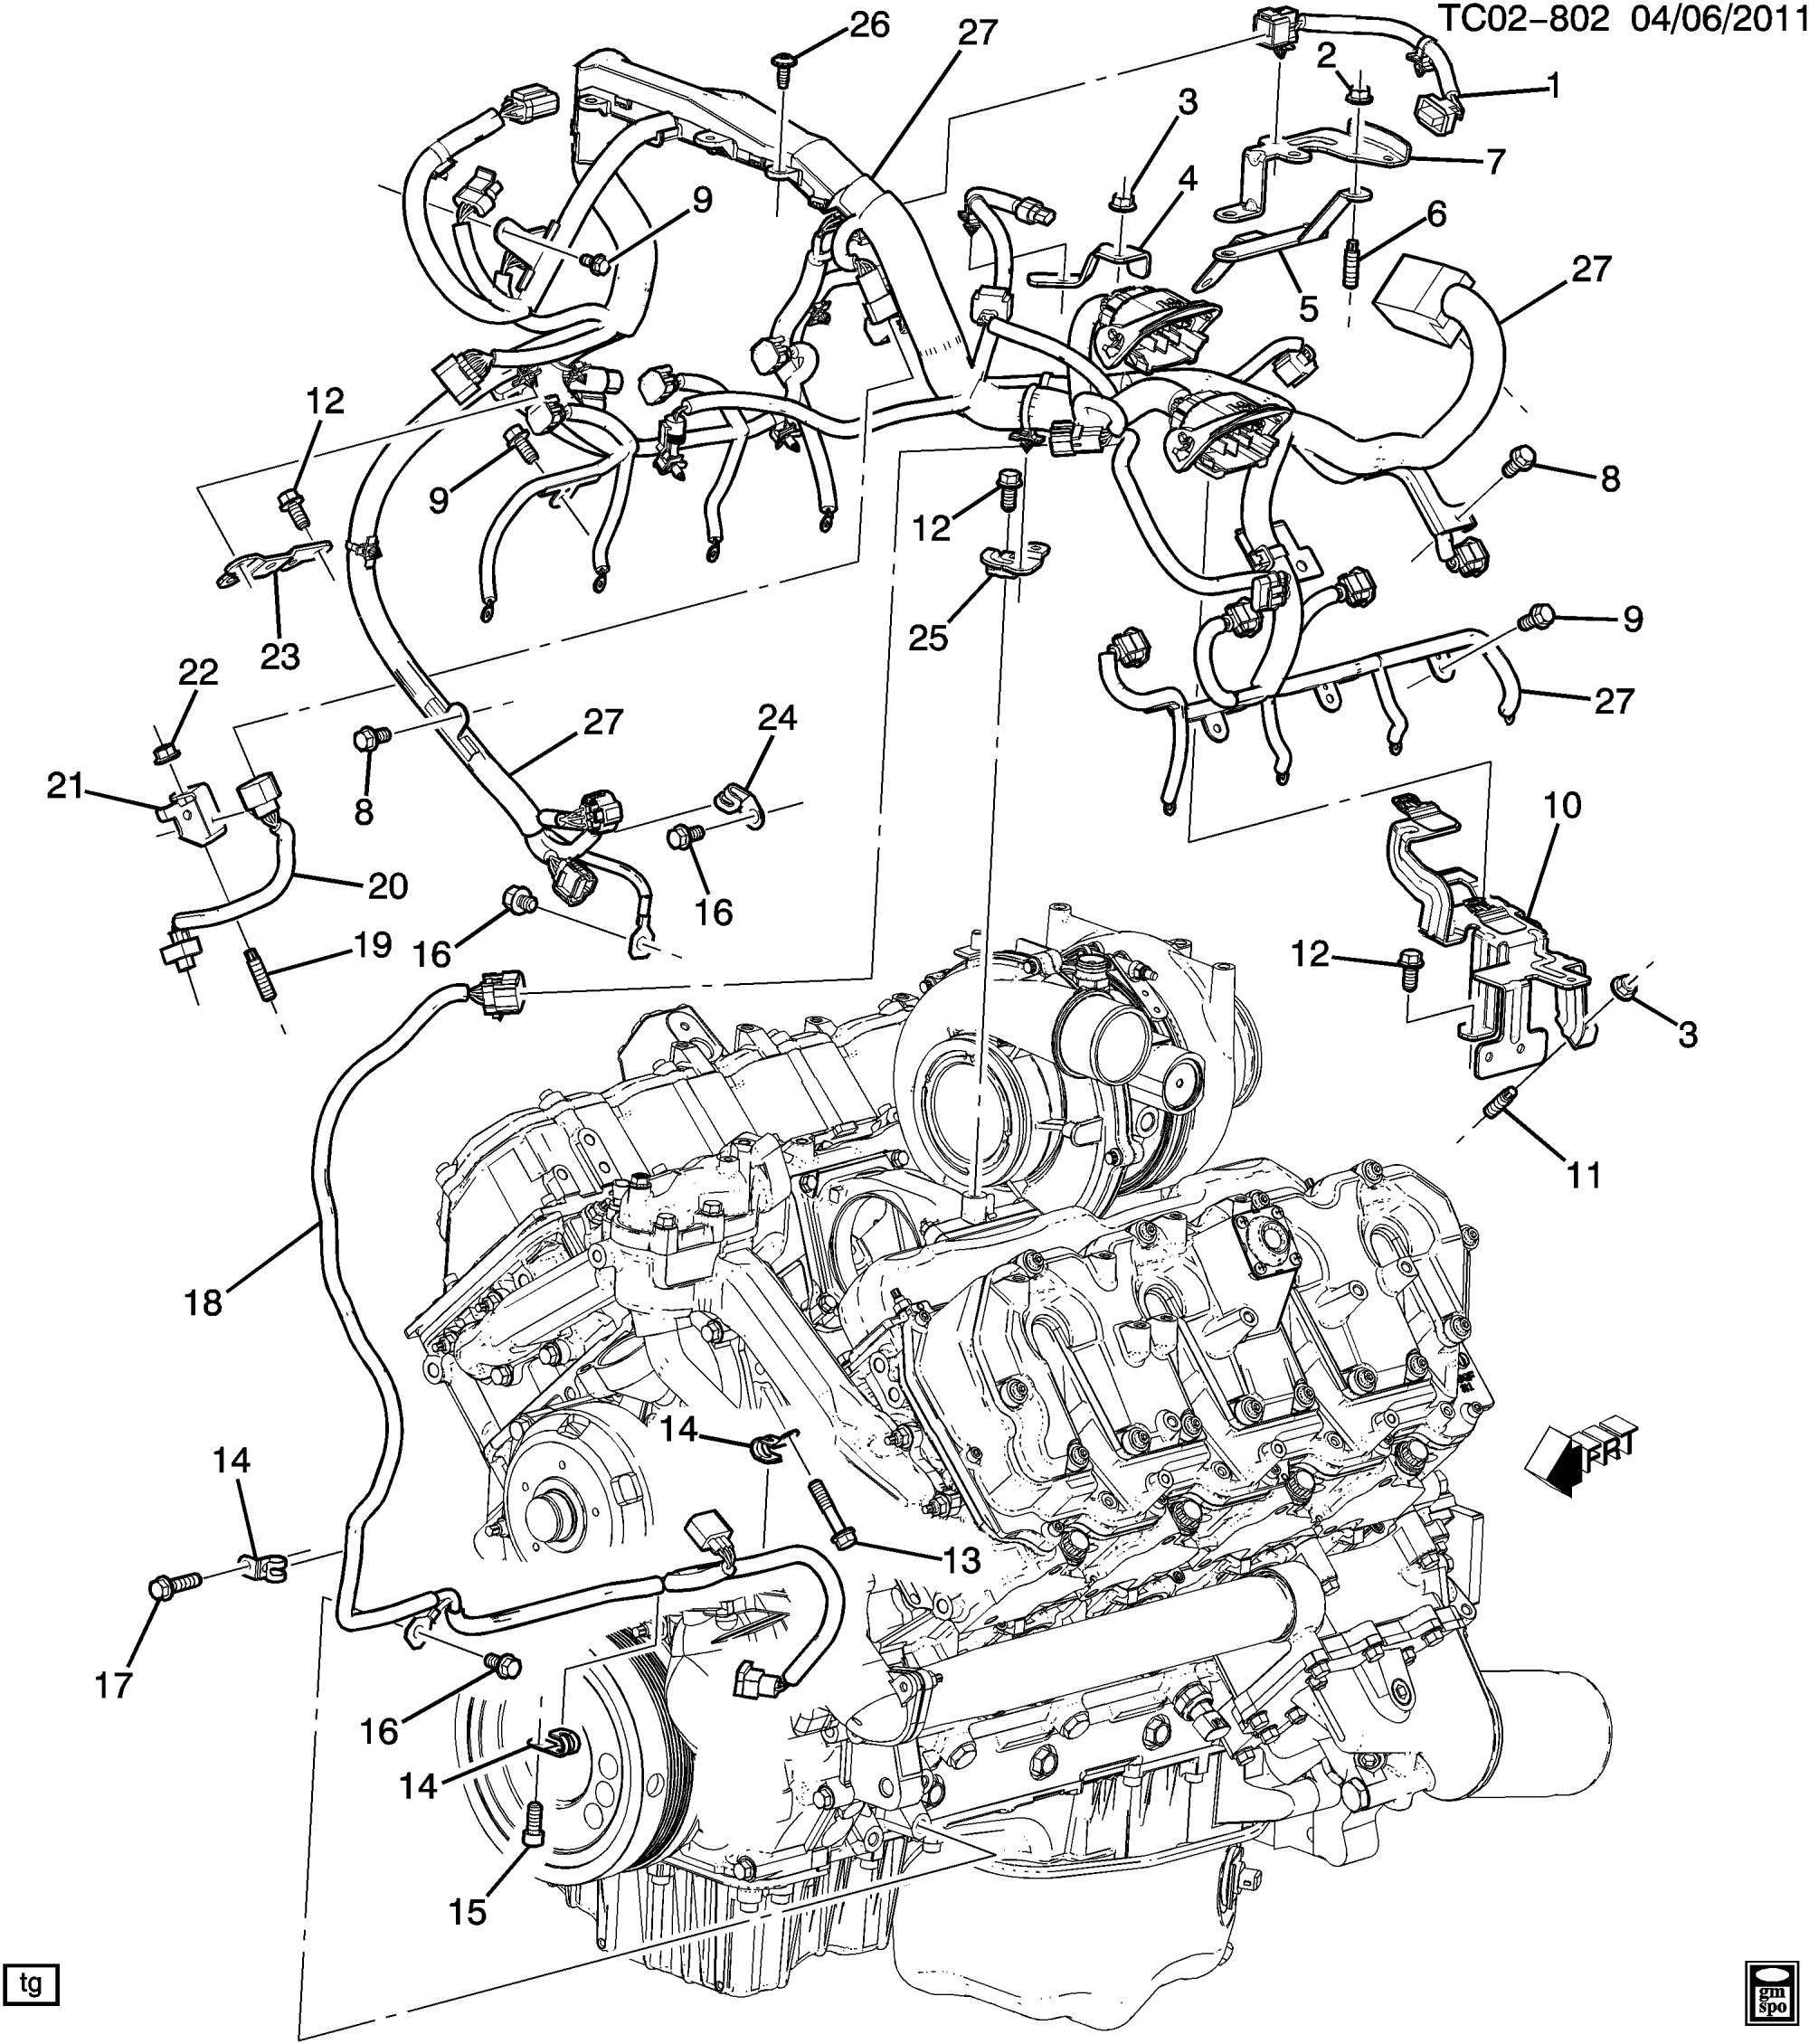 hight resolution of duramax wiring harness wiring diagram mega lbz duramax wiring harness diagram duramax wiring harness